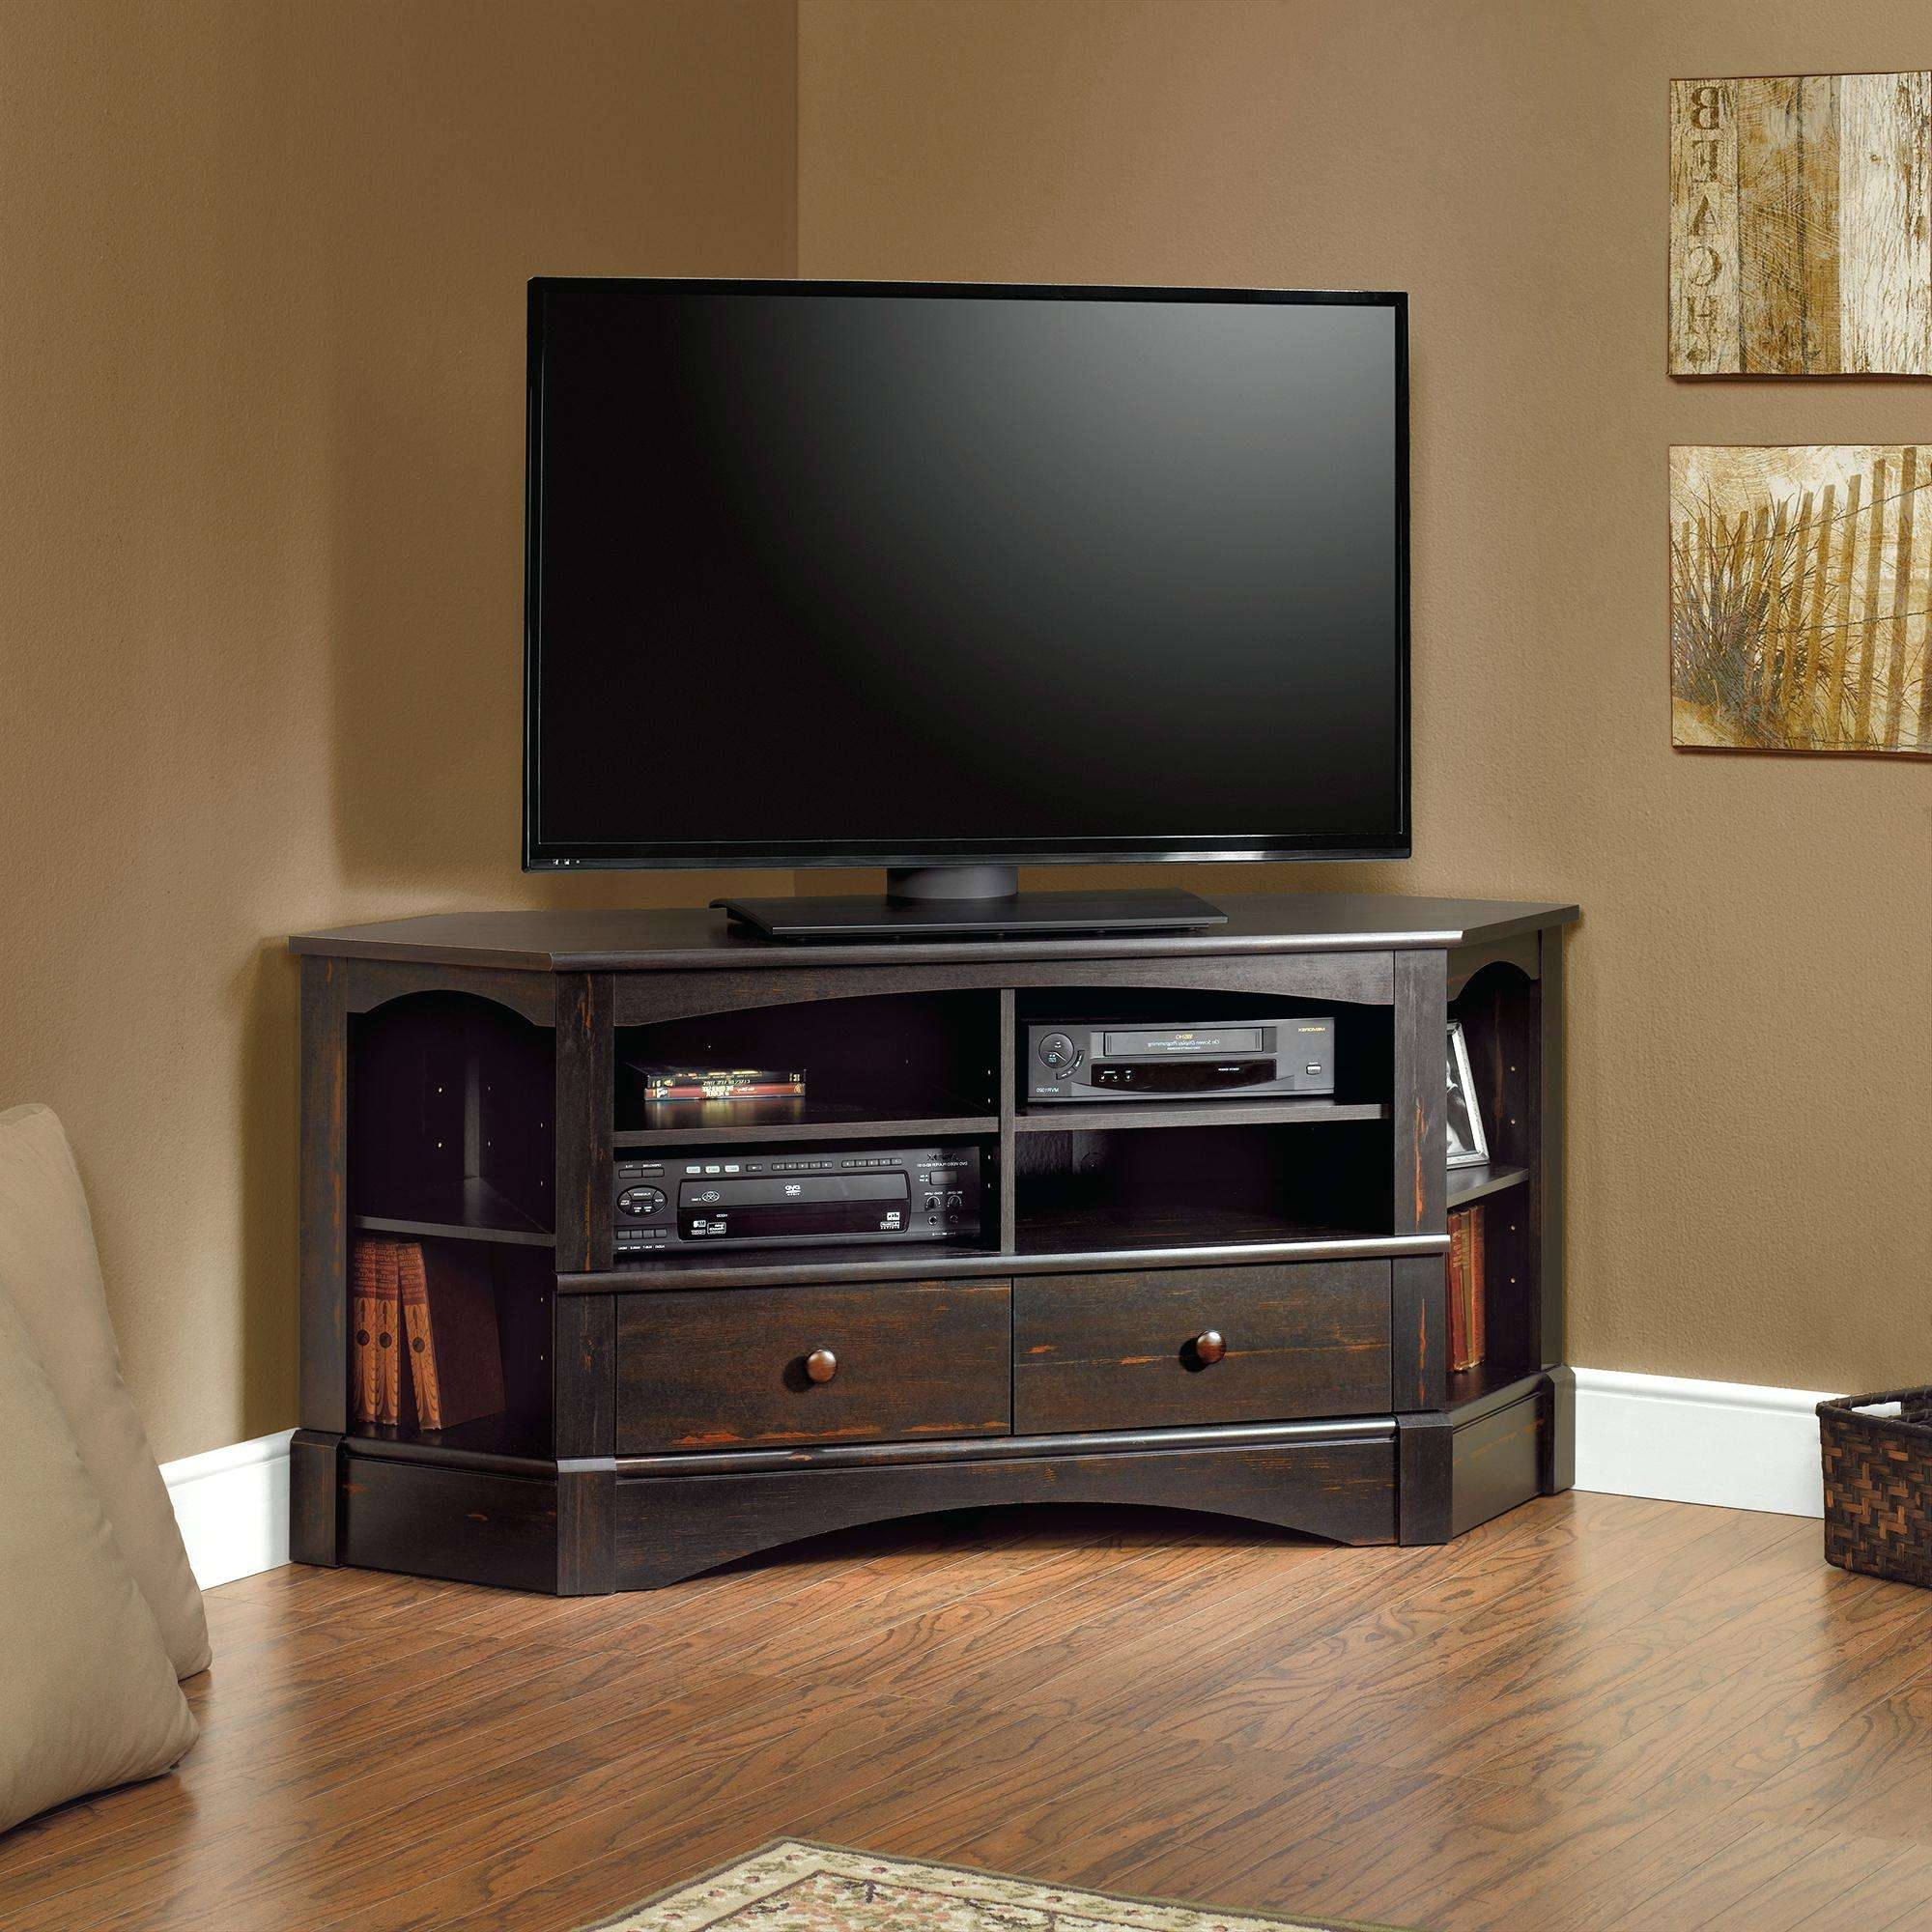 Tv Stand : Dark Wood Tv Stand With Shelf Retro Design Solid Corner For Dark Wood Tv Stands (View 14 of 20)